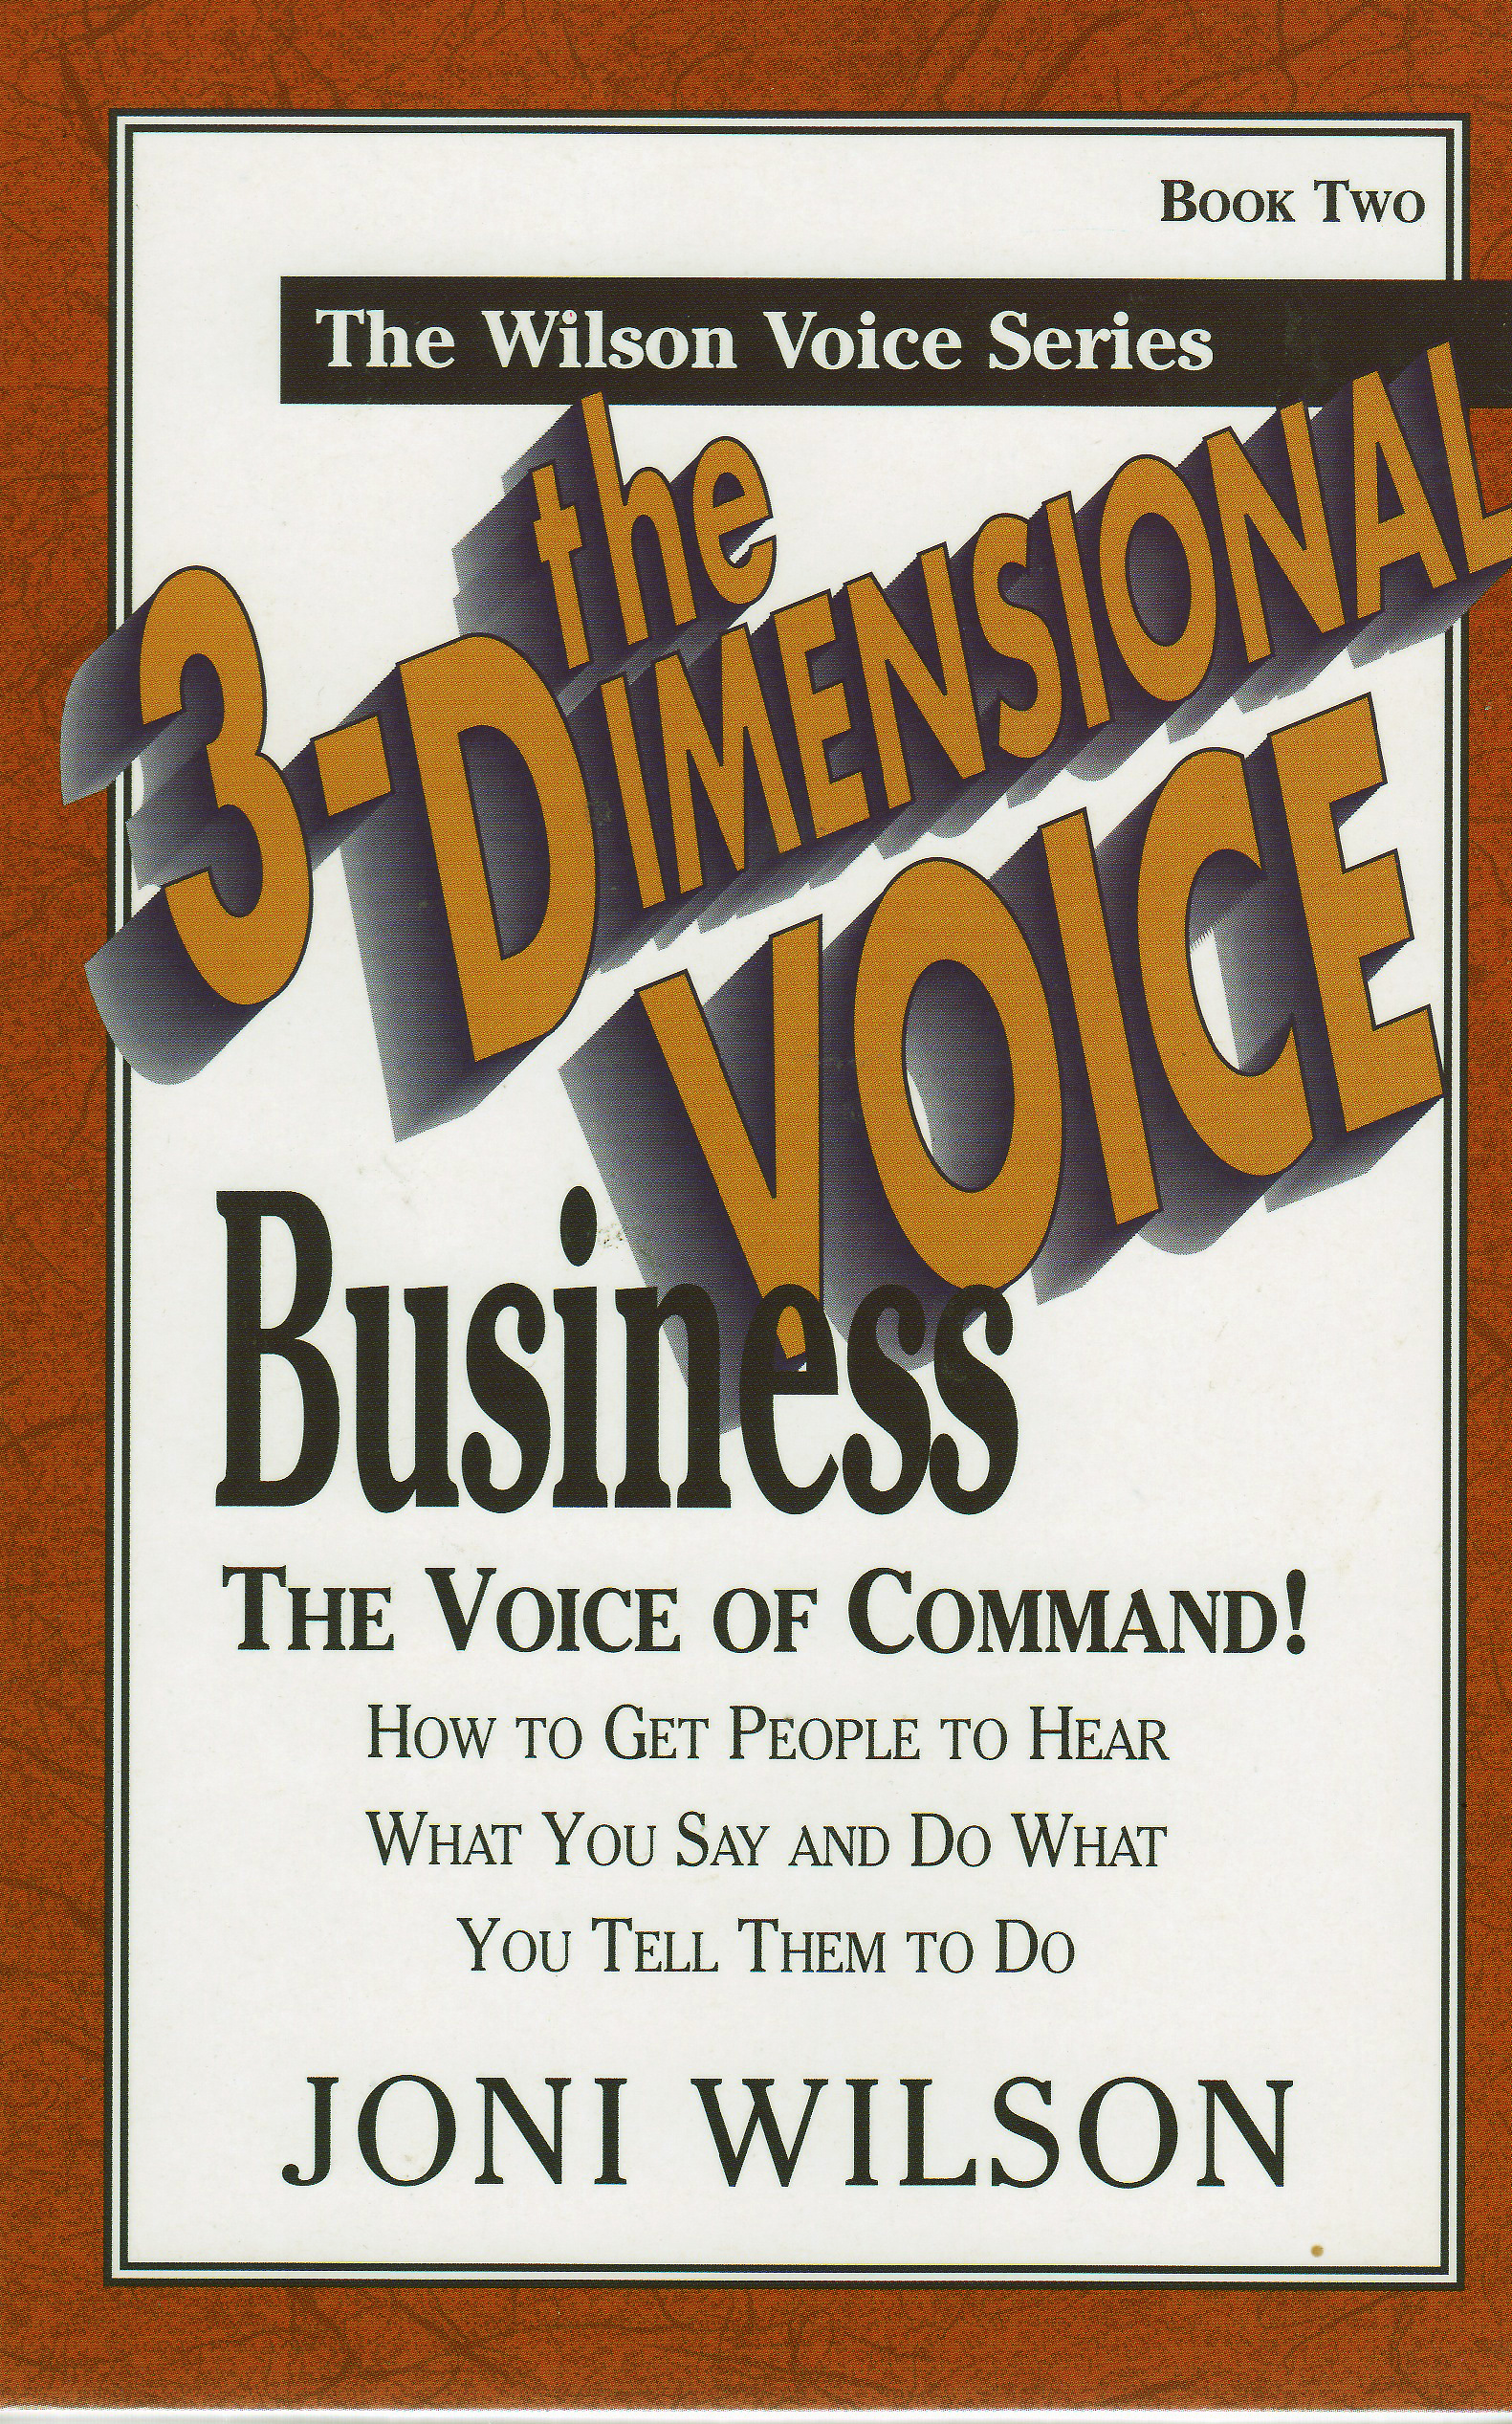 The 3-Dimensional Business Voice: The Voice of Command, an Ebook by Joni  Wilson